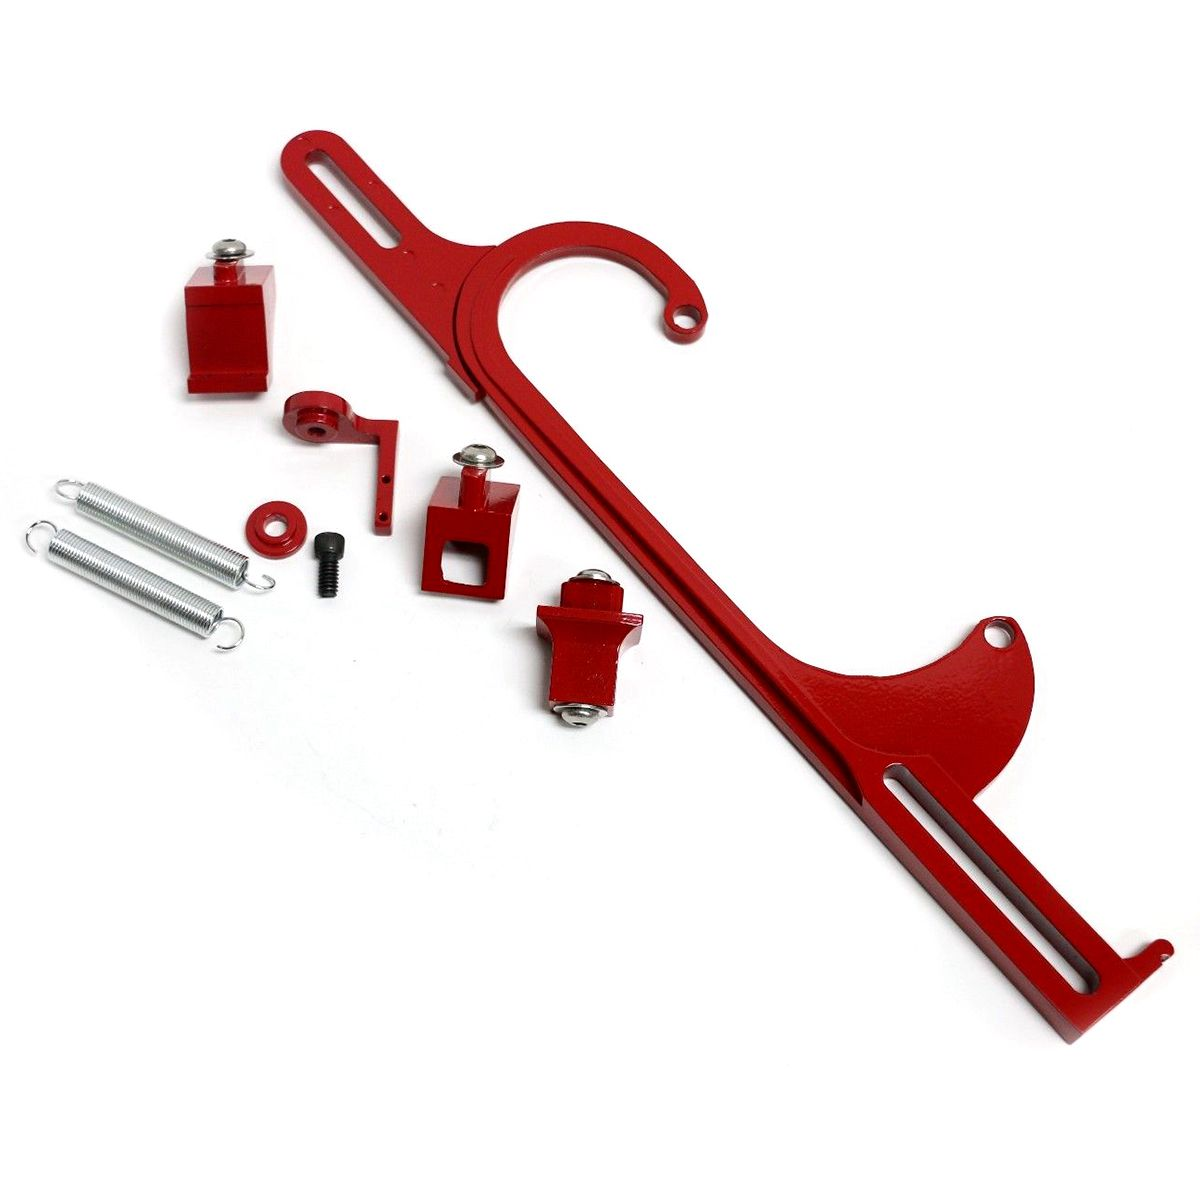 4150 4160 Red Aluminum Throttle Cable Carb Bracket Carburetor 350 SBC4150 4160 Red Aluminum Throttle Cable Carb Bracket Carburetor 350 SBC